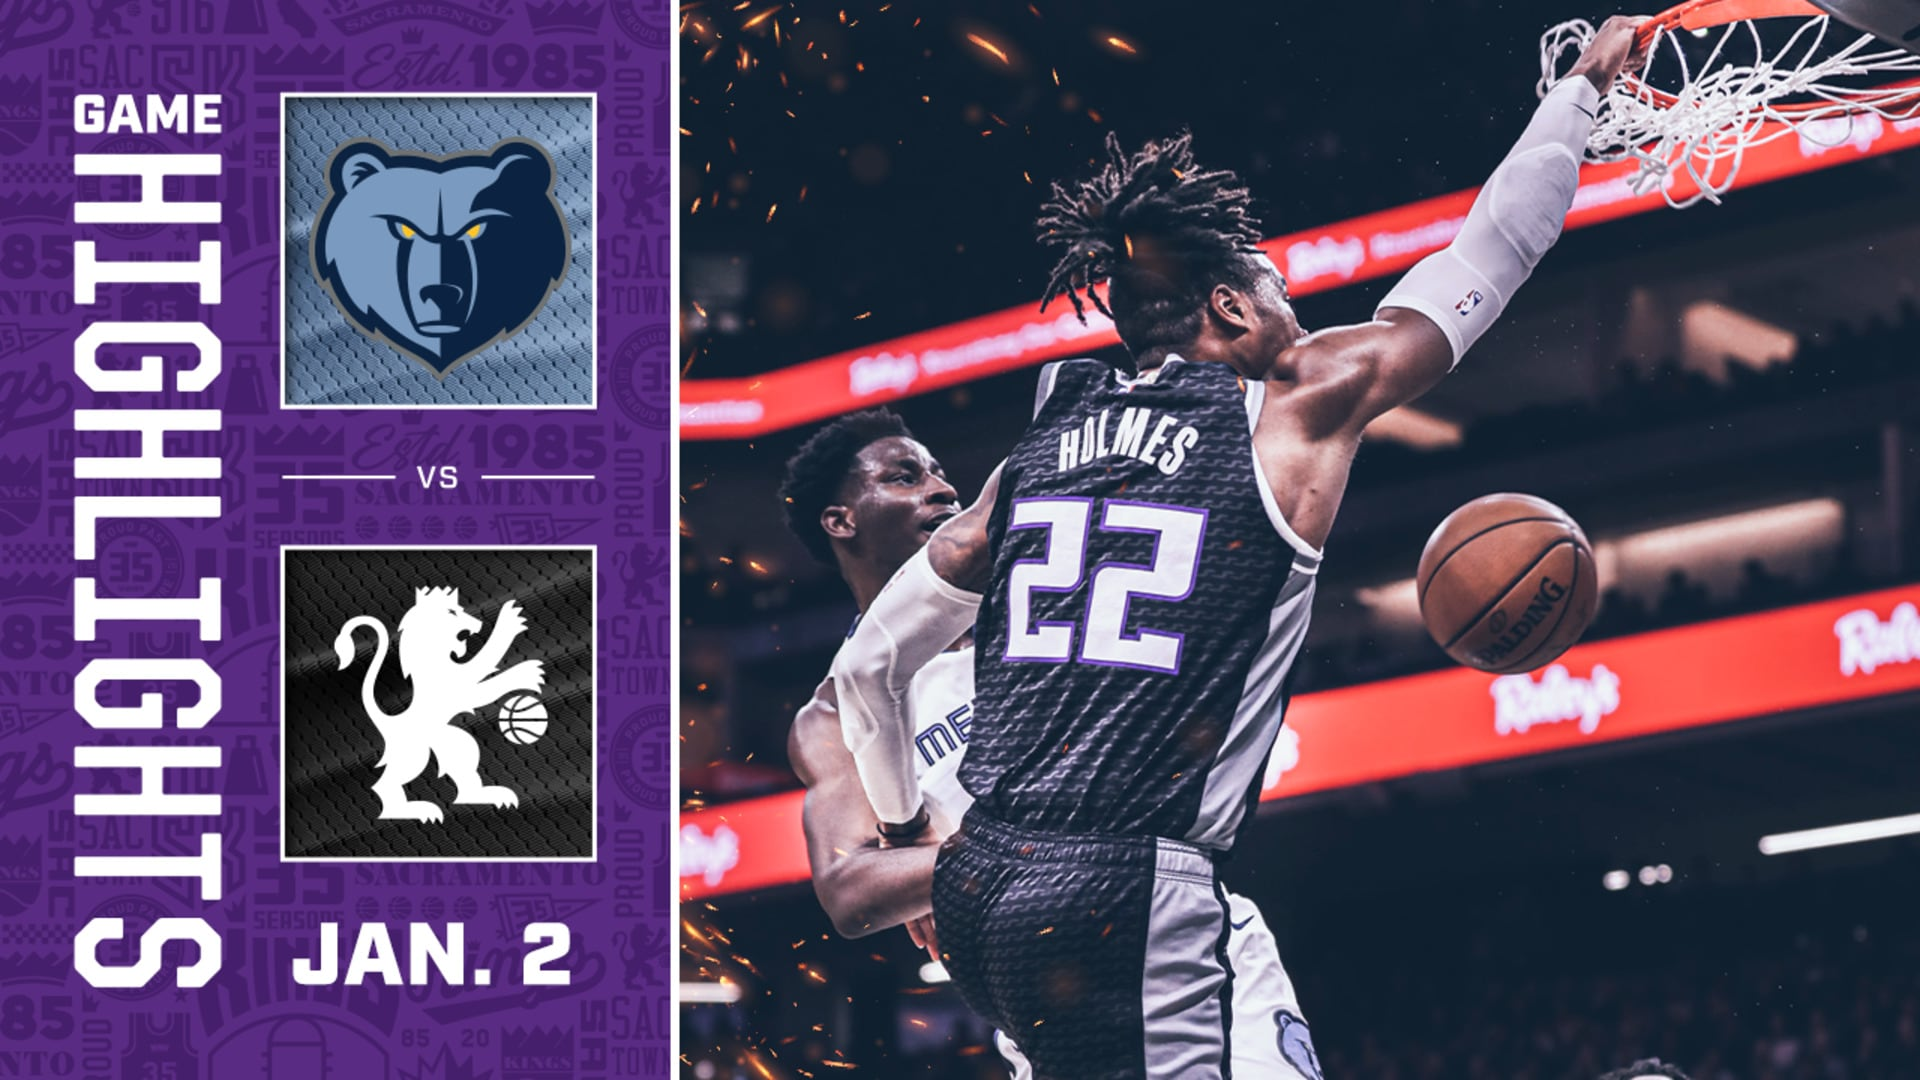 Kings Open 2020 with Win! | Kings vs Grizzlies